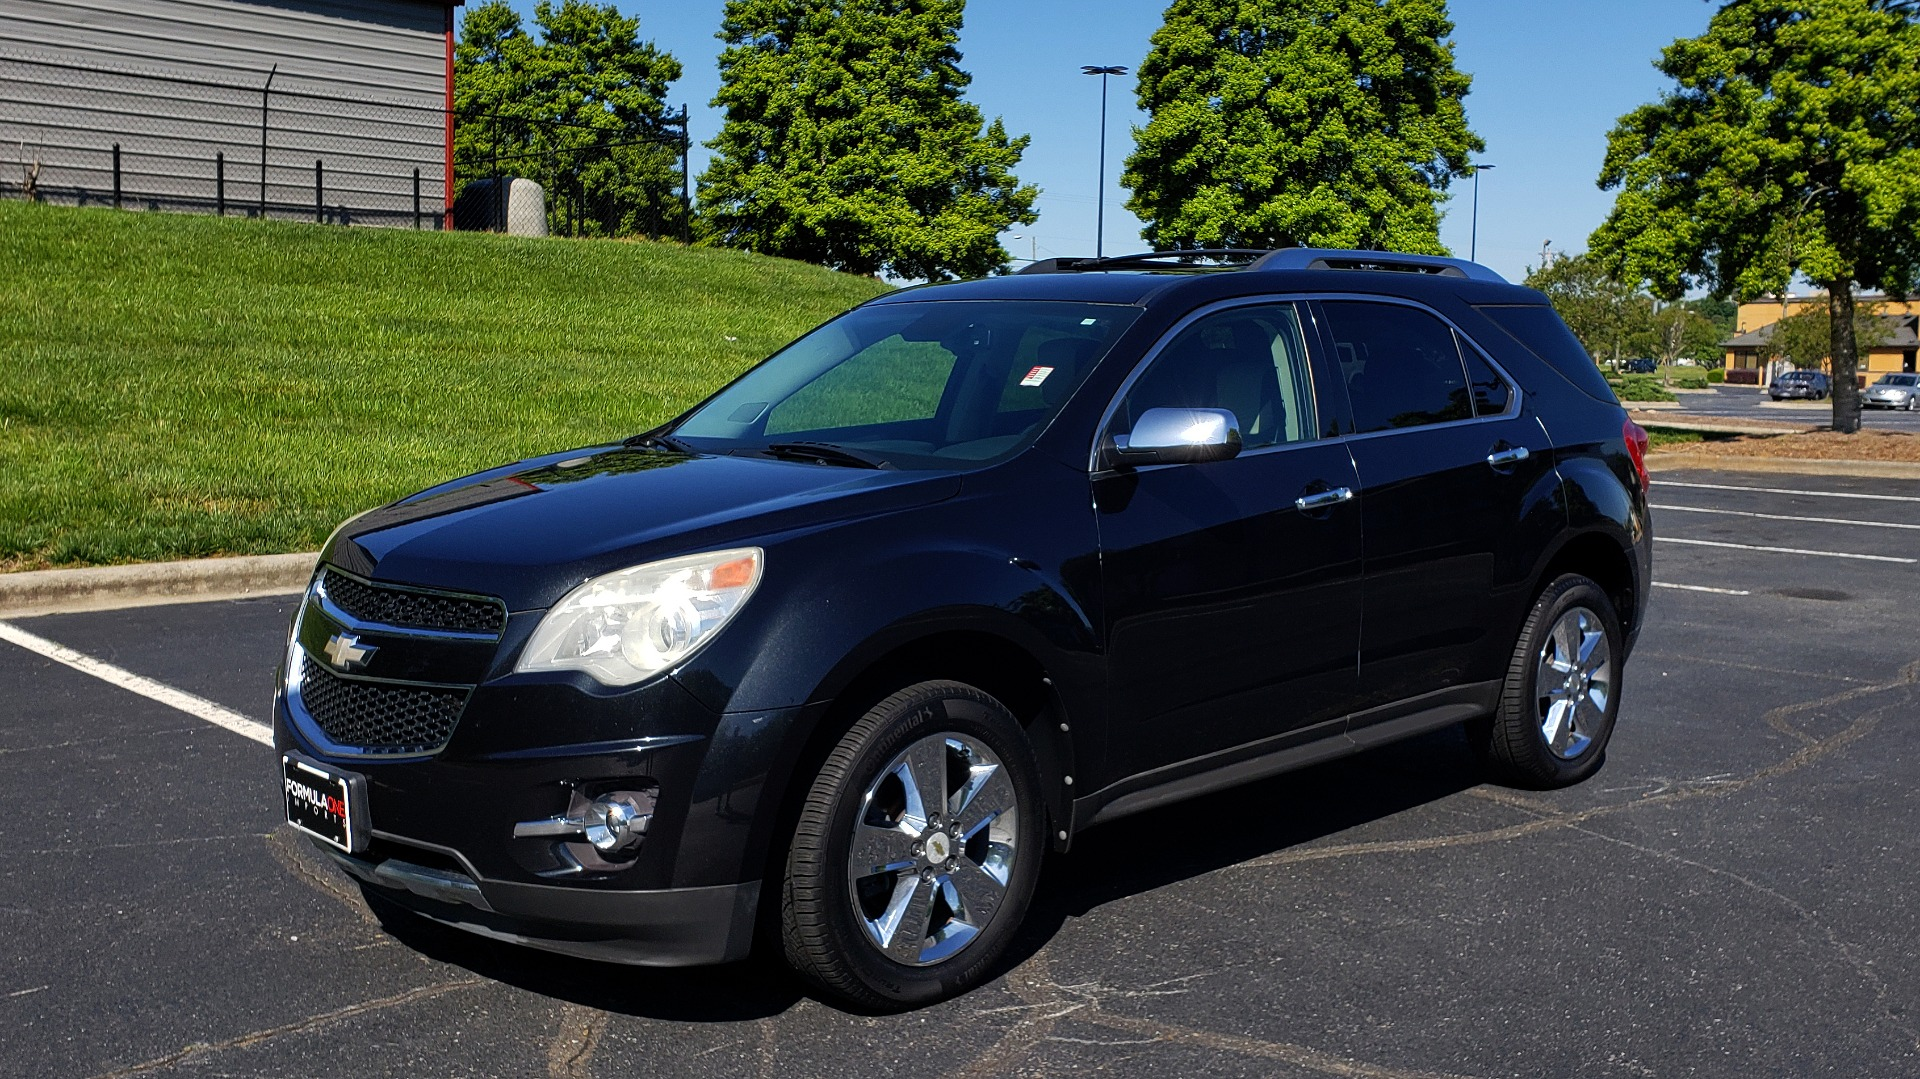 Used 2012 Chevrolet EQUINOX LTZ / FWD / 3.0L V6 / NAV / SUNROOF / PIONEER SND / REARVIEW for sale Sold at Formula Imports in Charlotte NC 28227 1